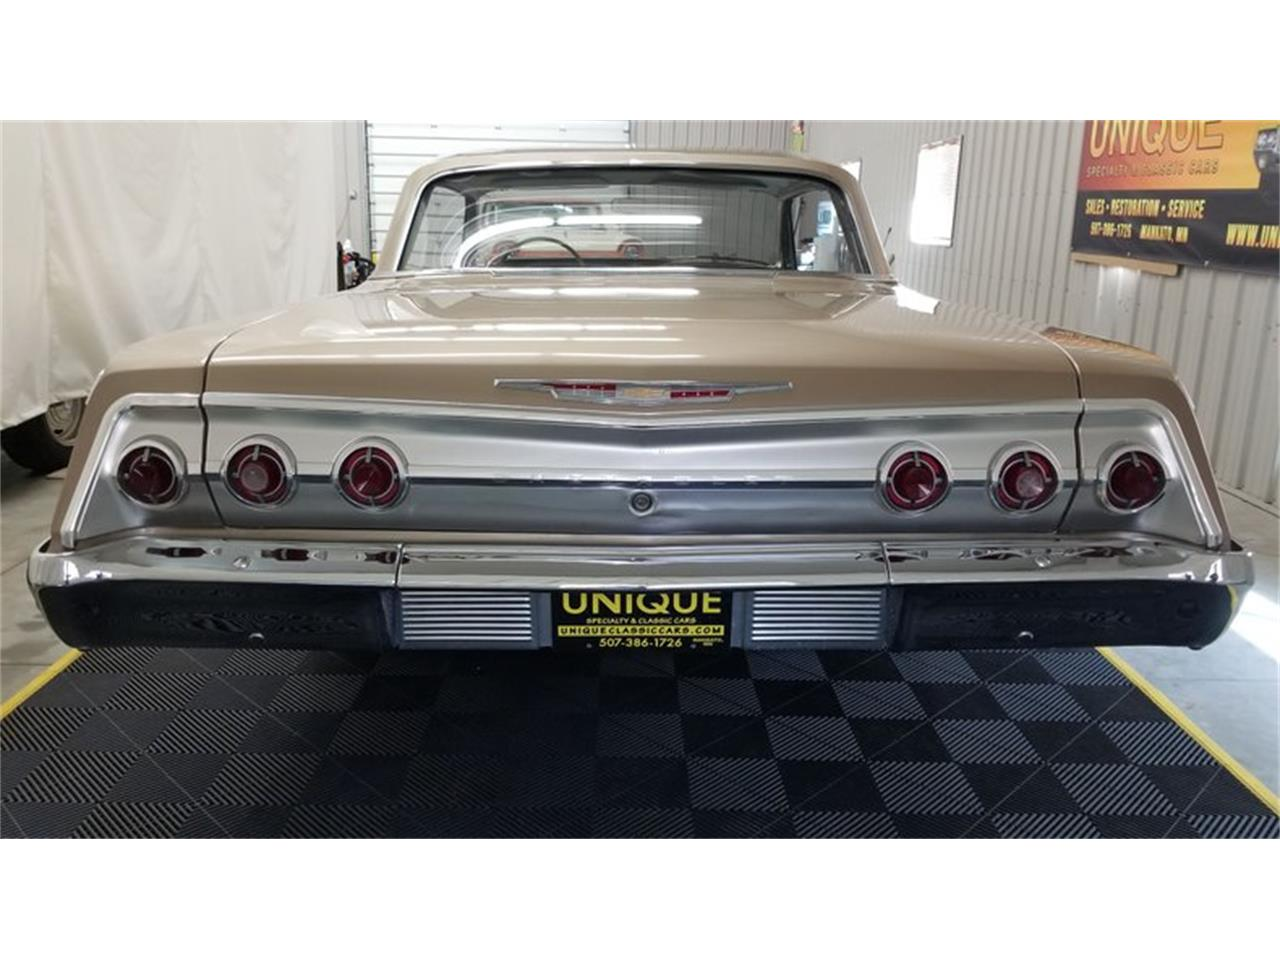 Large Picture of '62 Impala located in Mankato Minnesota - $29,900.00 Offered by Unique Specialty And Classics - QKOQ